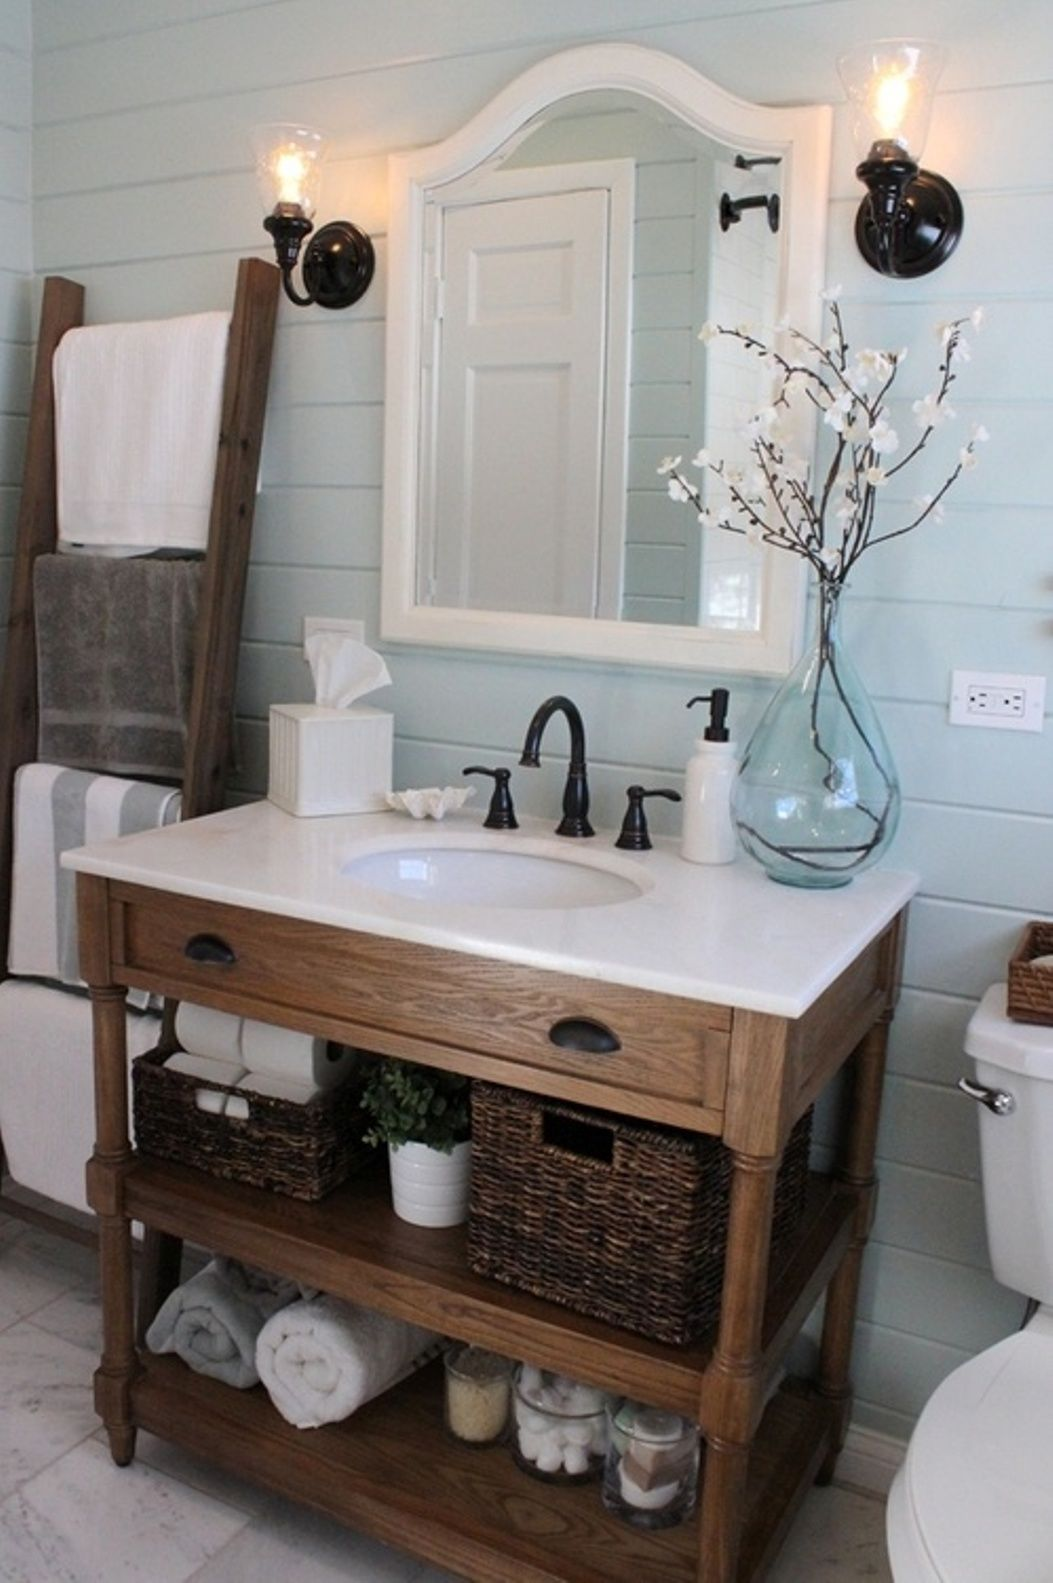 17 inspiring rustic bathroom decor ideas for cozy home for Pics of bathroom decor